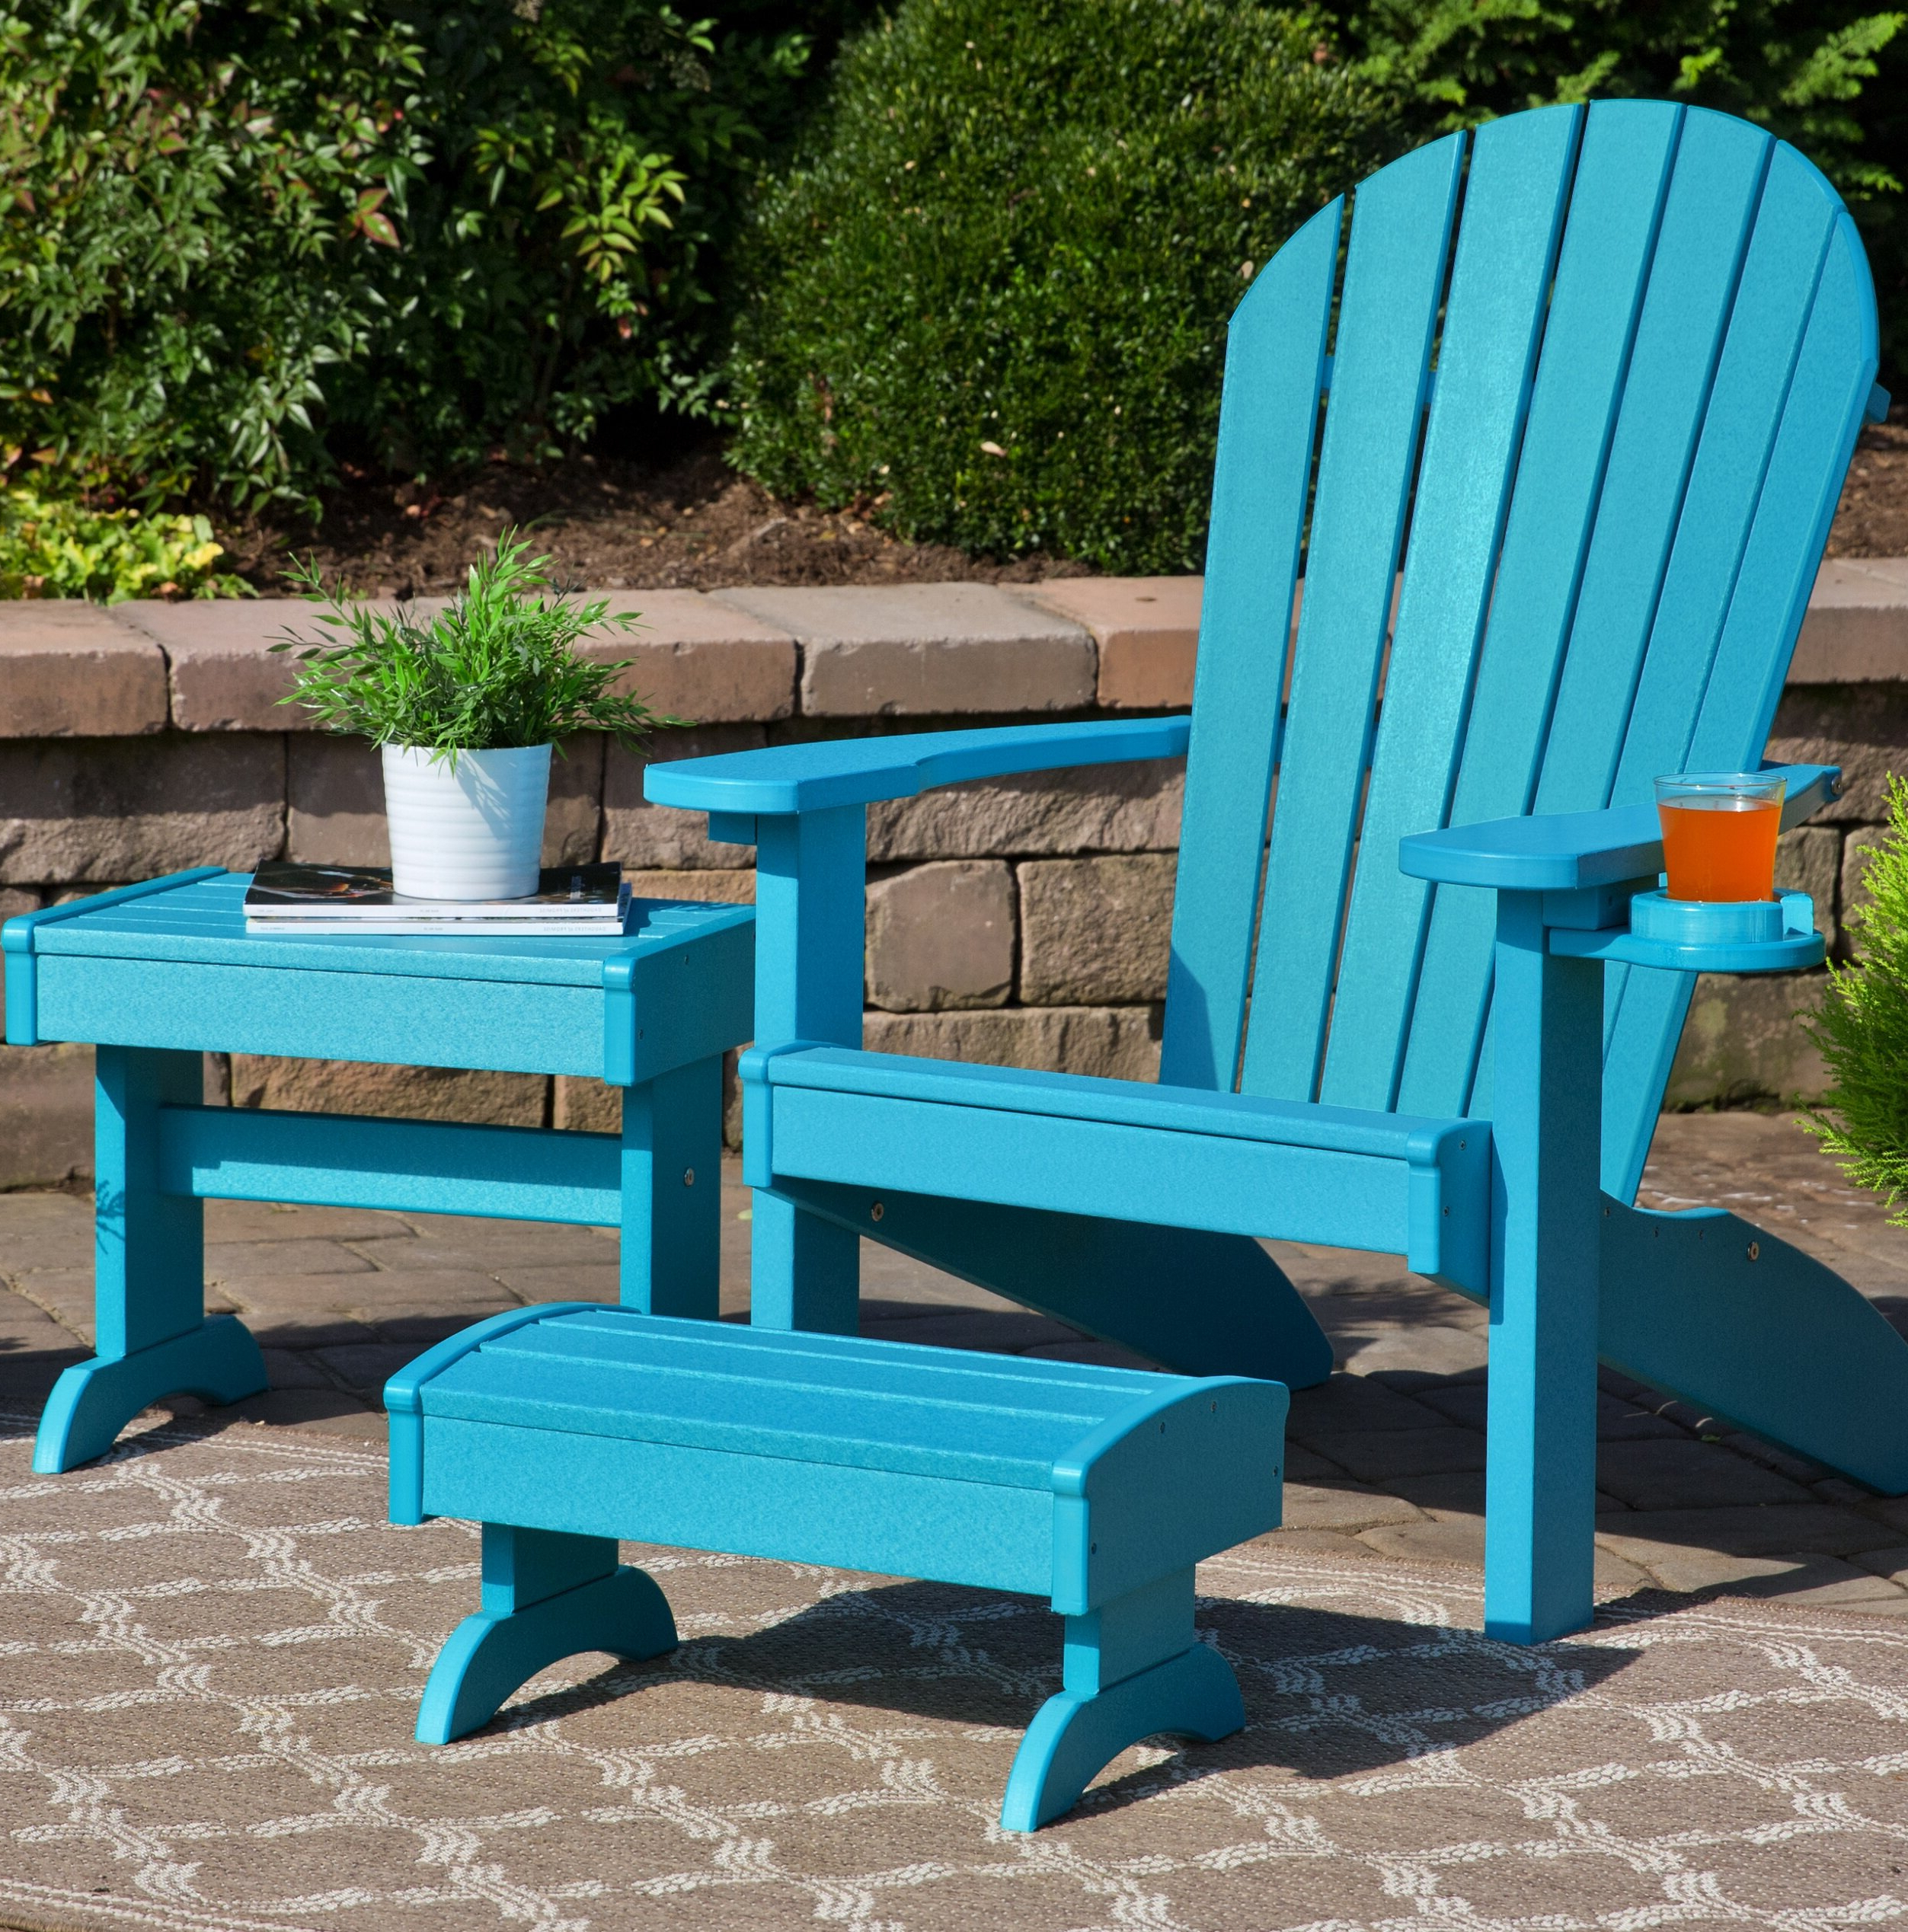 Mahogany Adirondack Chairs With Ottoman Pertaining To Favorite Kells 3 Piece Plastic Adirondack Chair Set With Ottoman And Table (View 19 of 25)